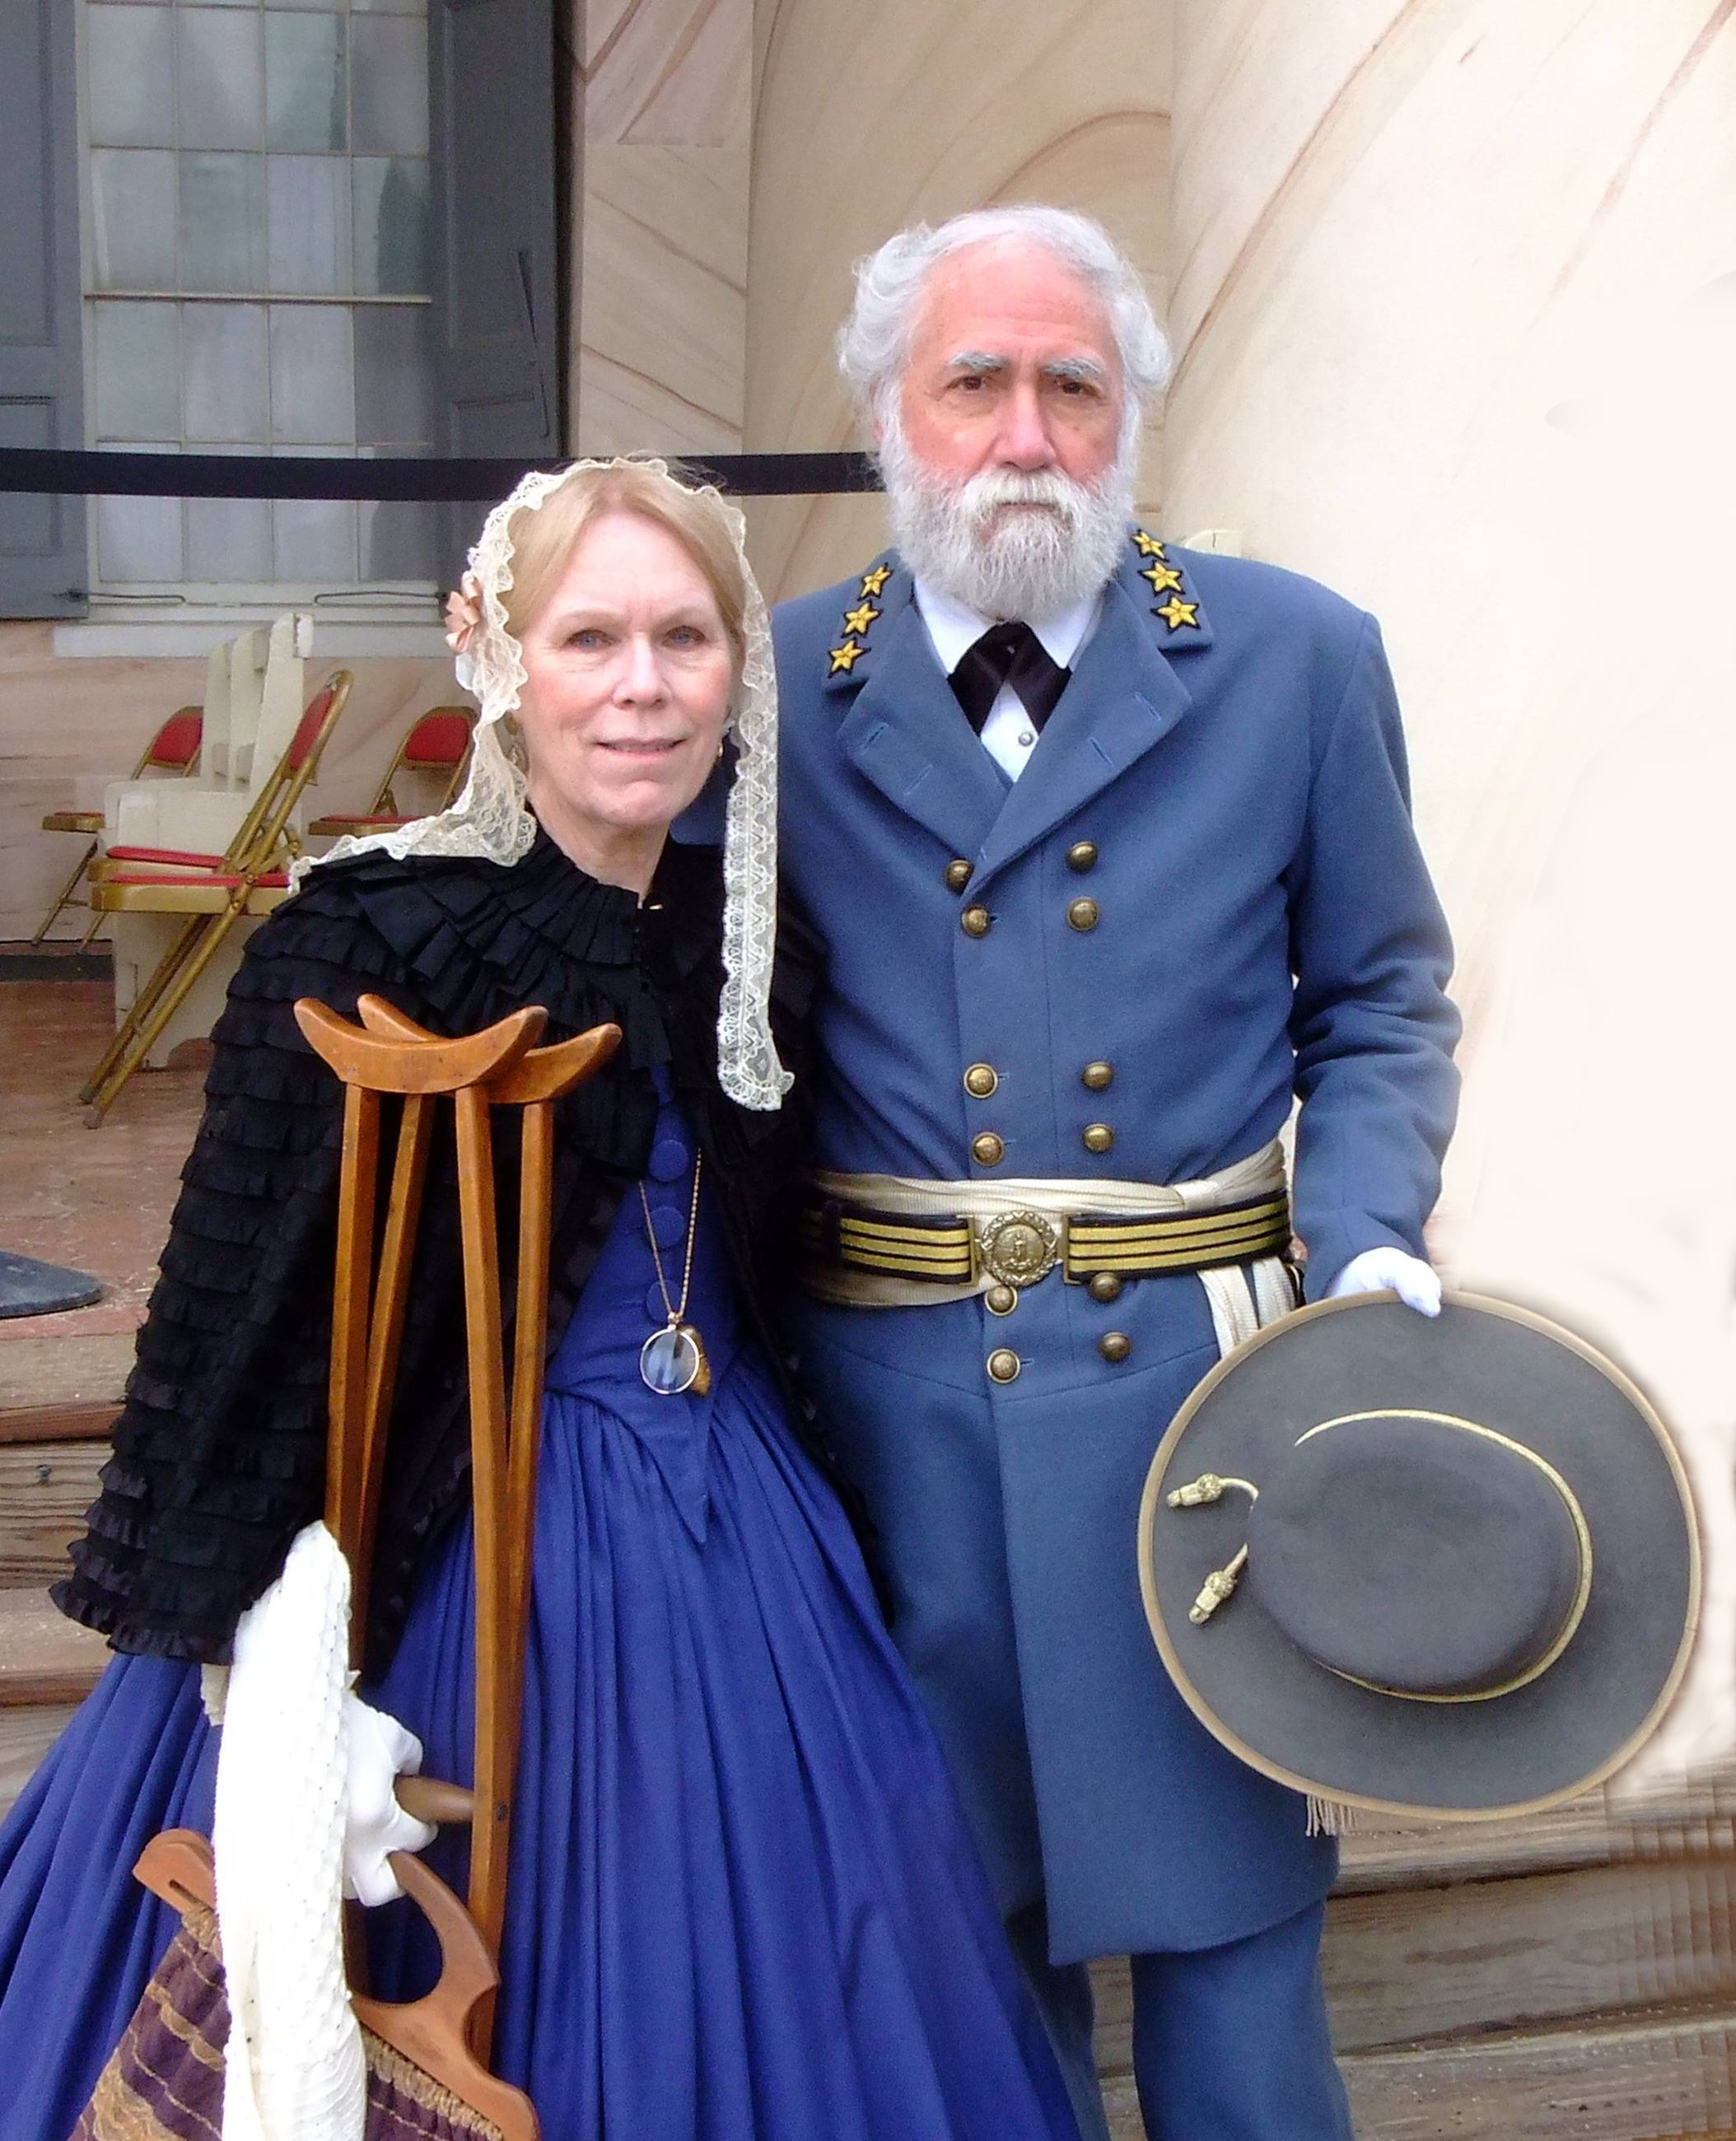 General and Mrs. Lee - Civil War Day